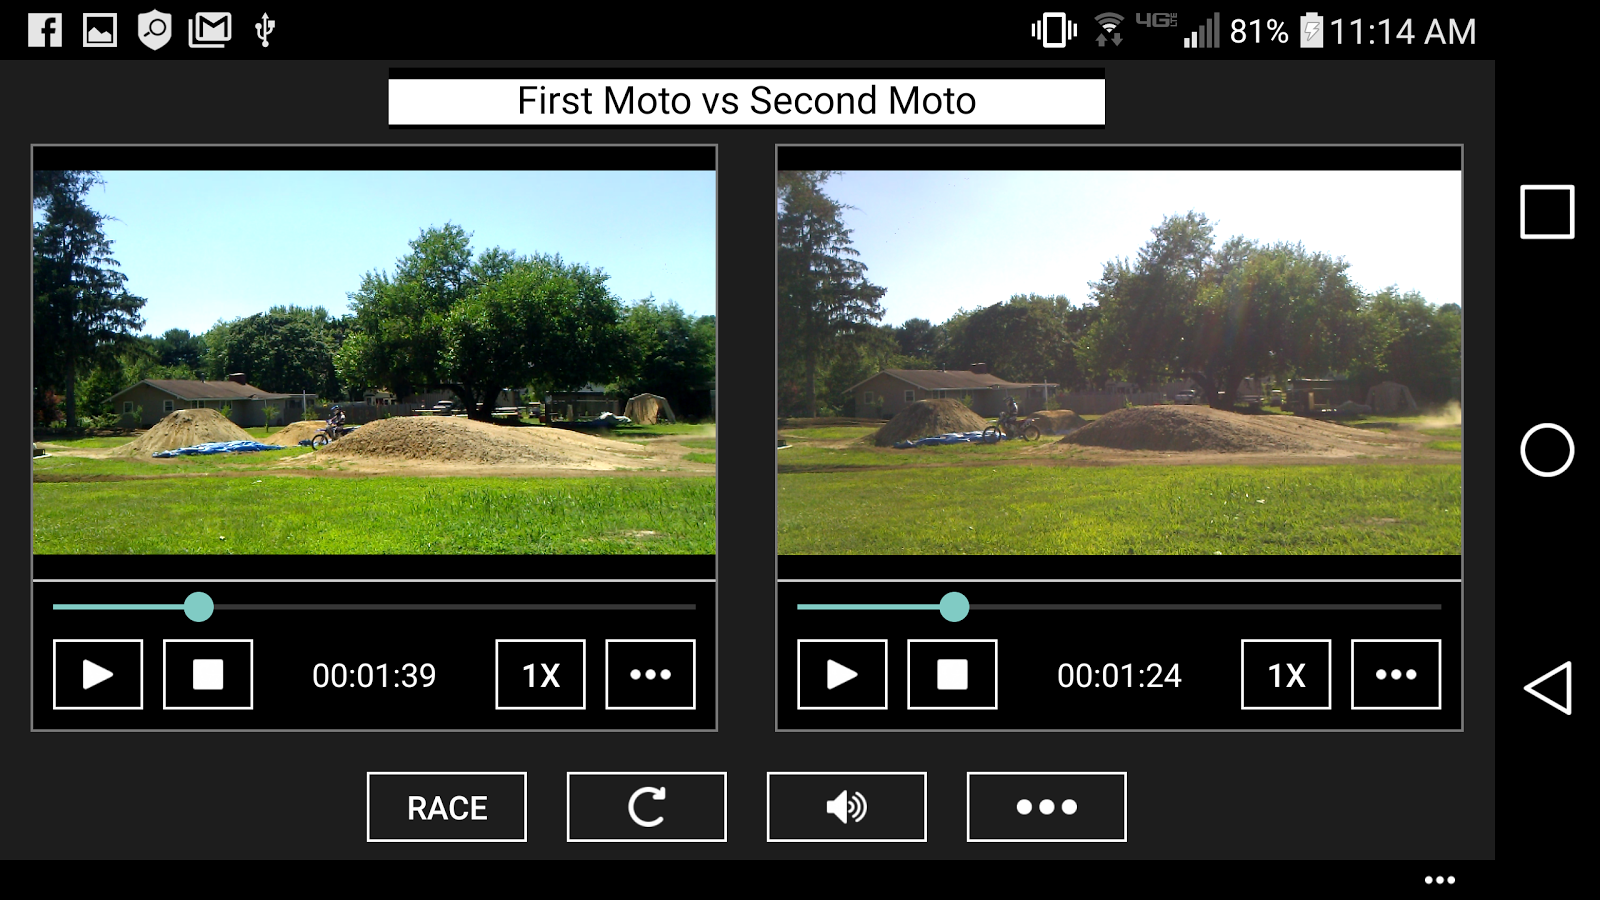 Match Race for Motocross and all forms of racing- screenshot